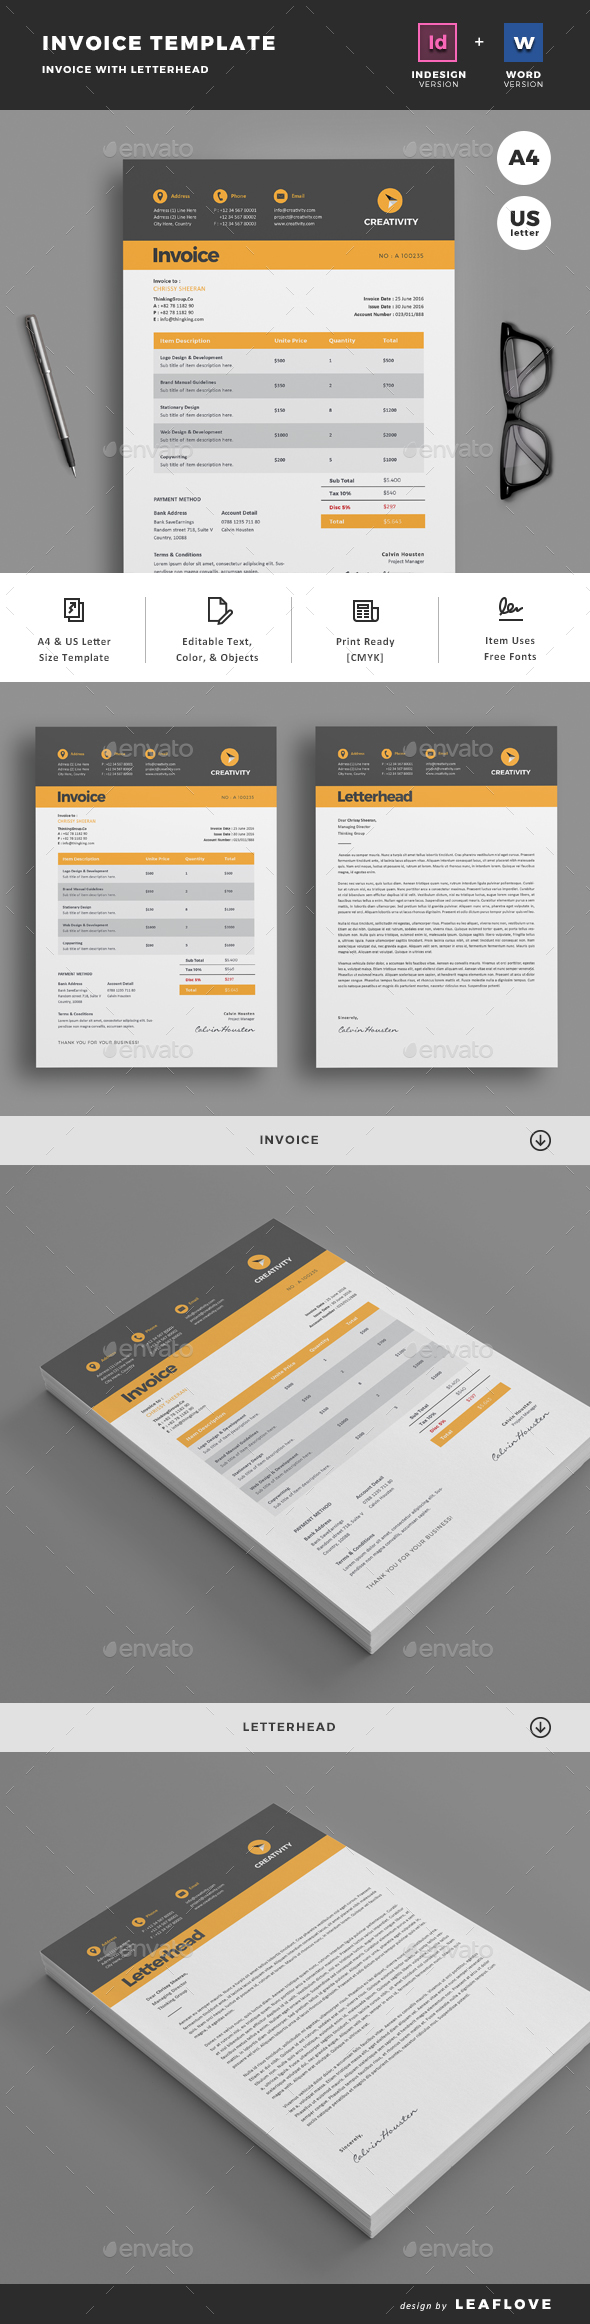 business proposal & invoice templates from graphicriver, Invoice templates